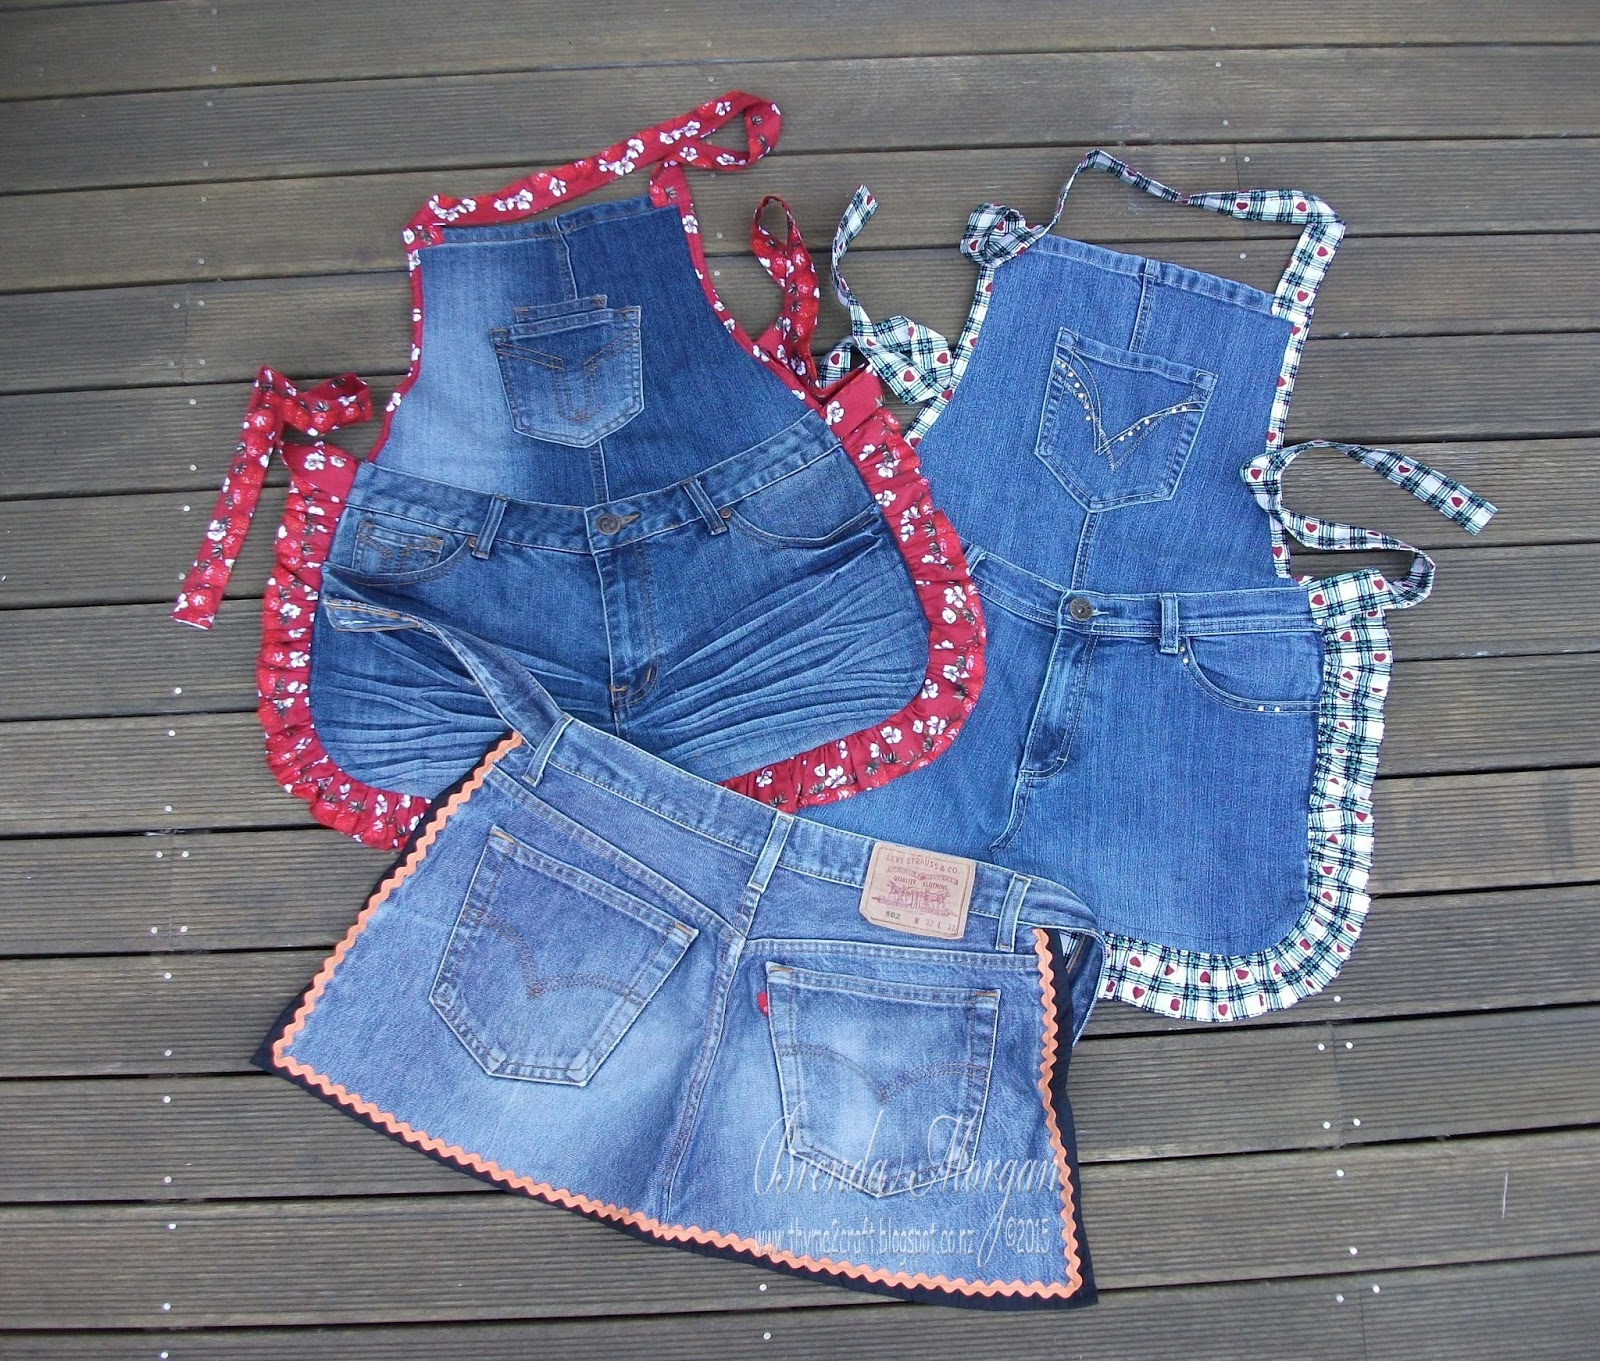 Thyme 2 Craft: Recycled Denim Jeans